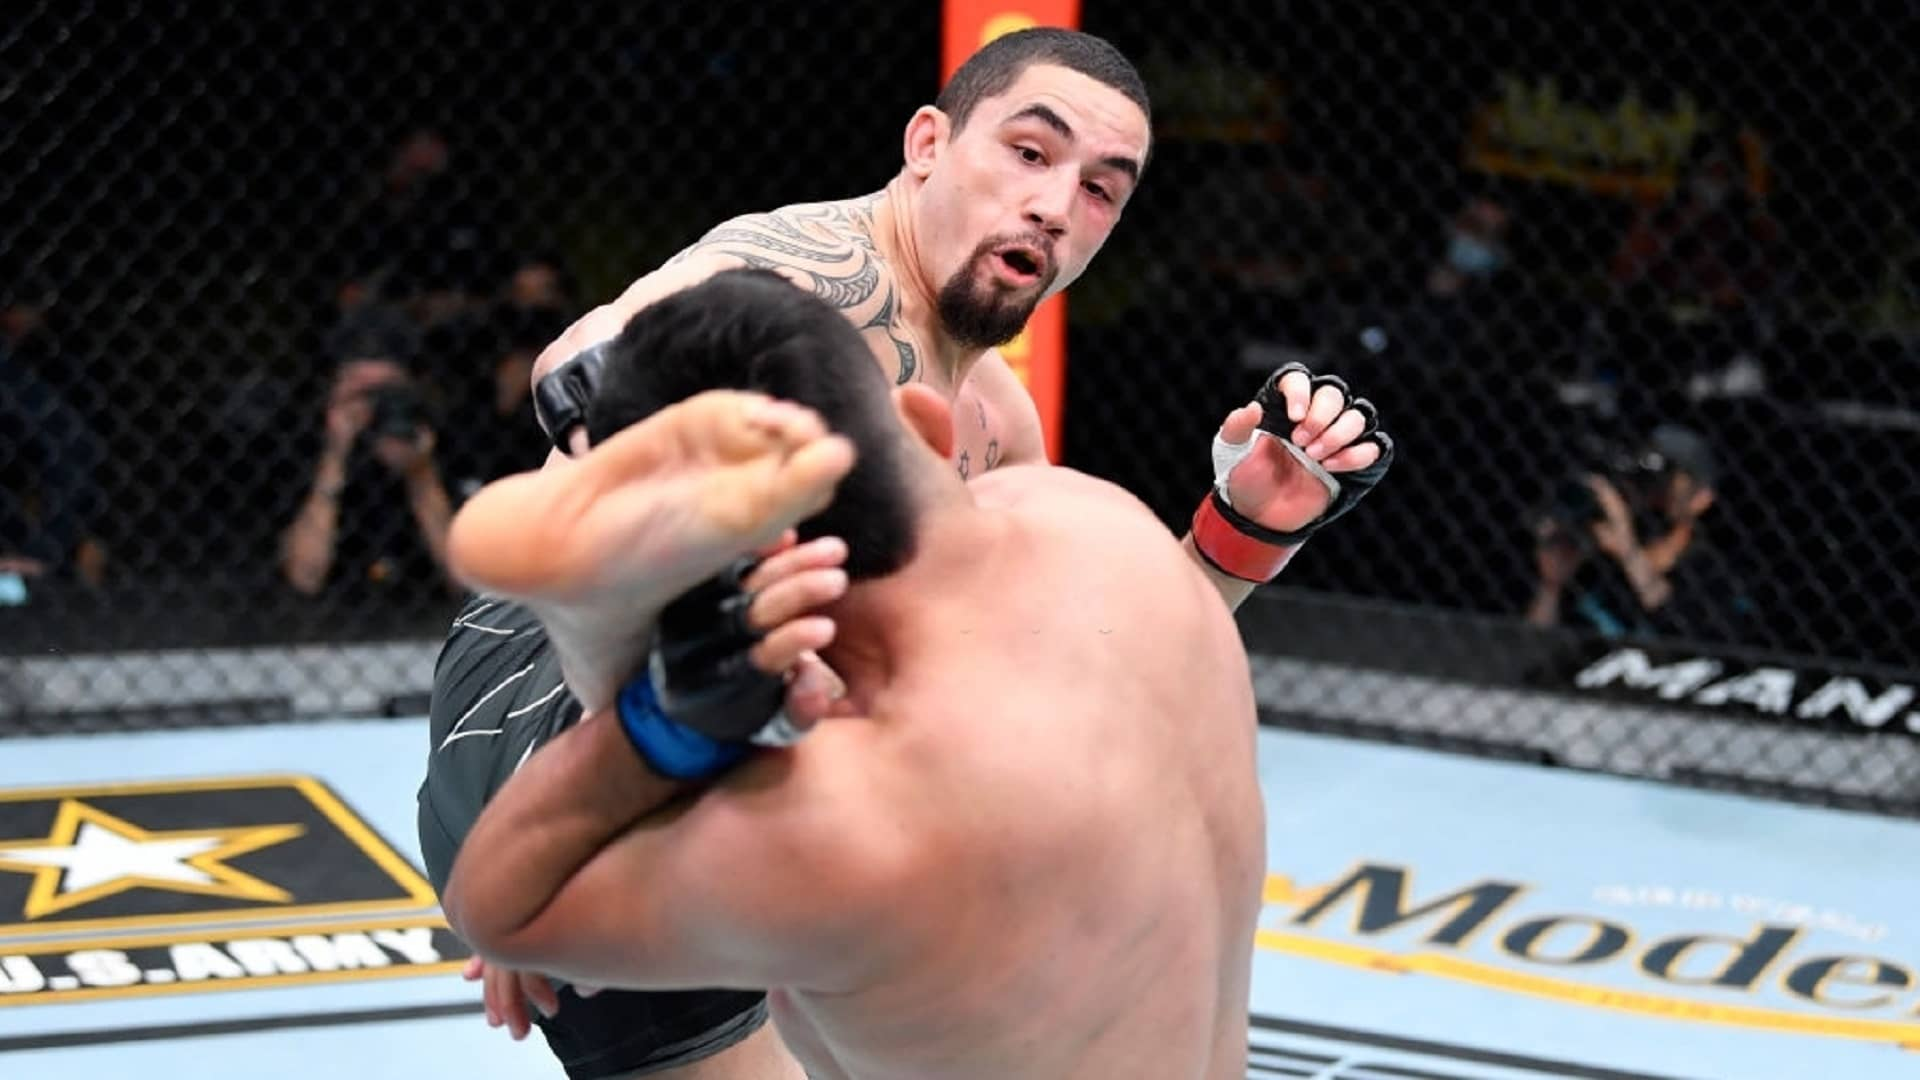 https://lockerroom.in/blog/view/UFC-Fight-Night-Whittaker-Gastelum-Results